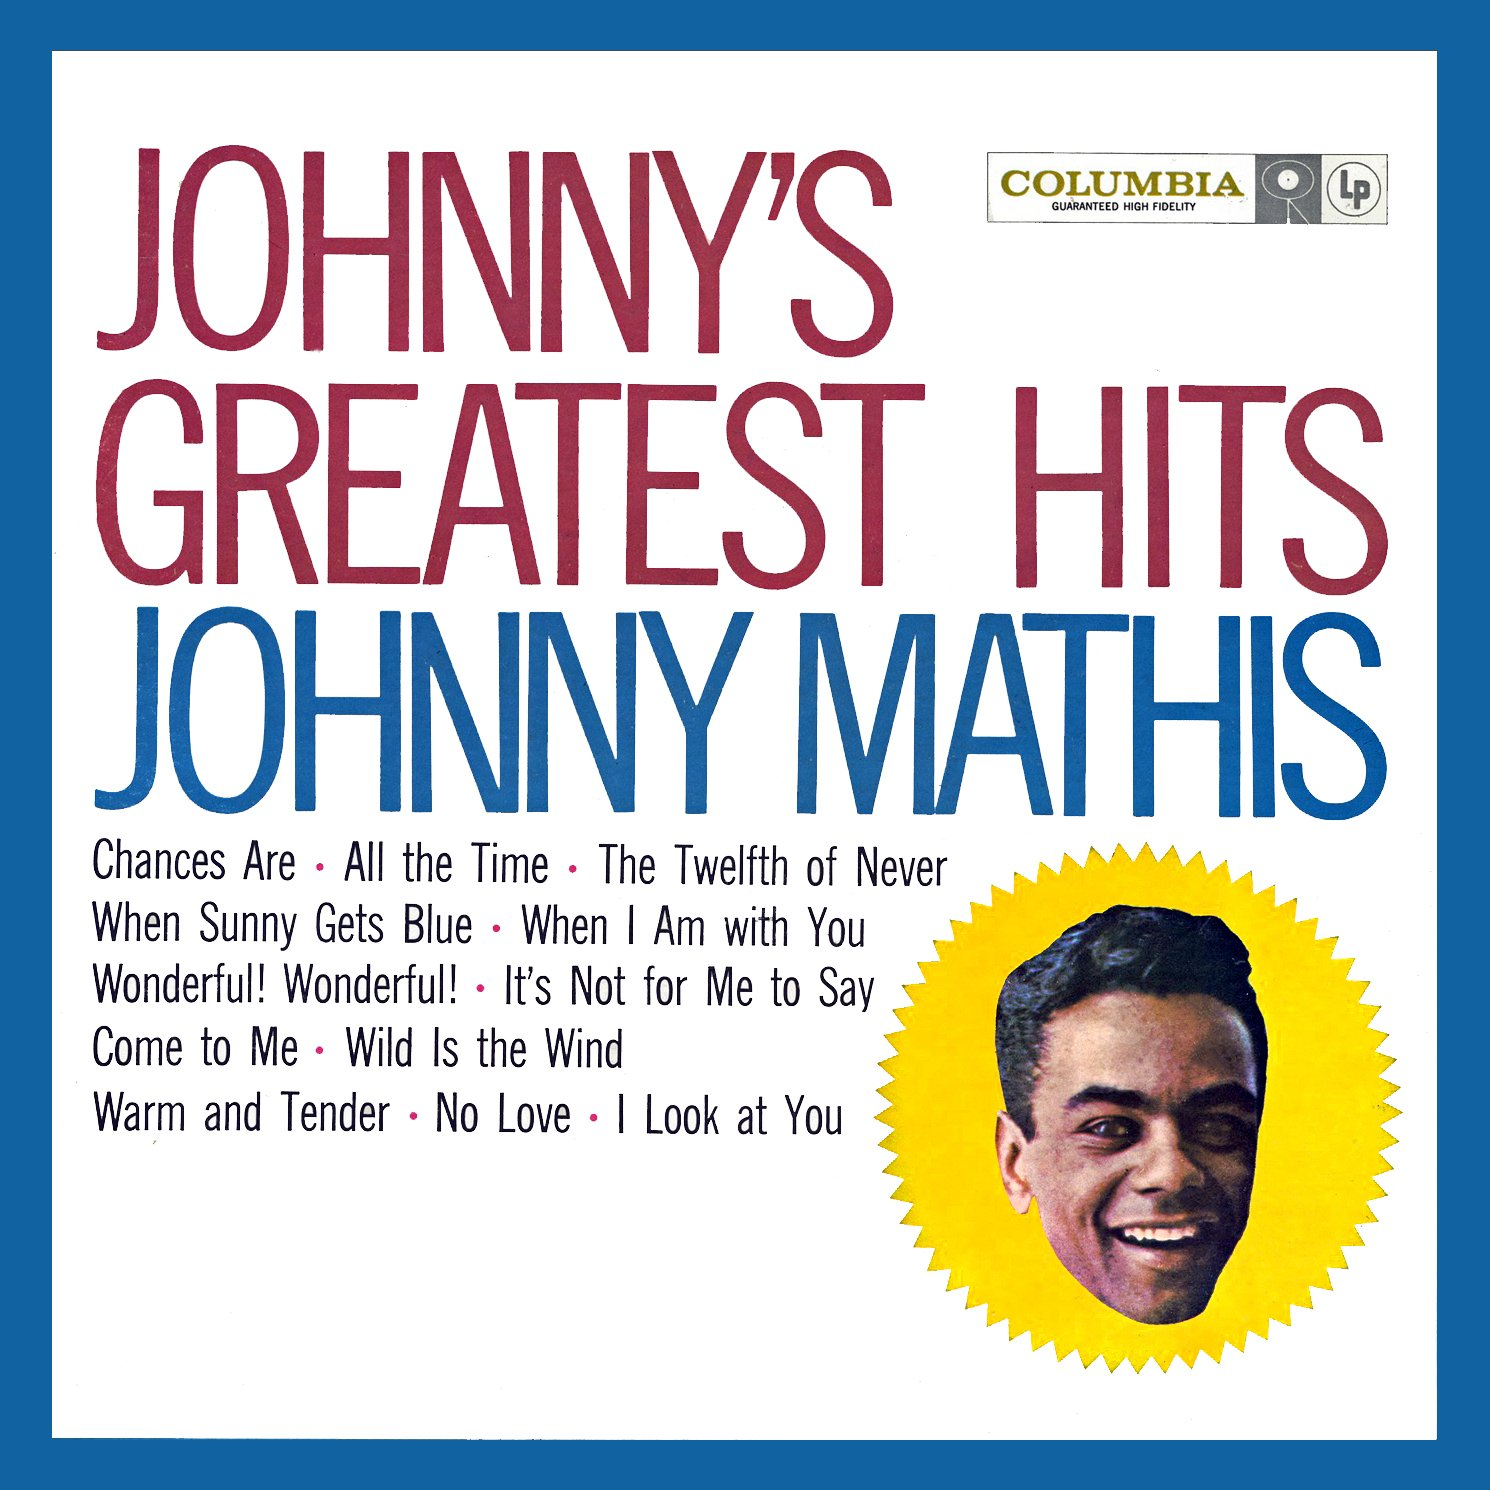 Johnny's Greatest Hits Johnny Mathis